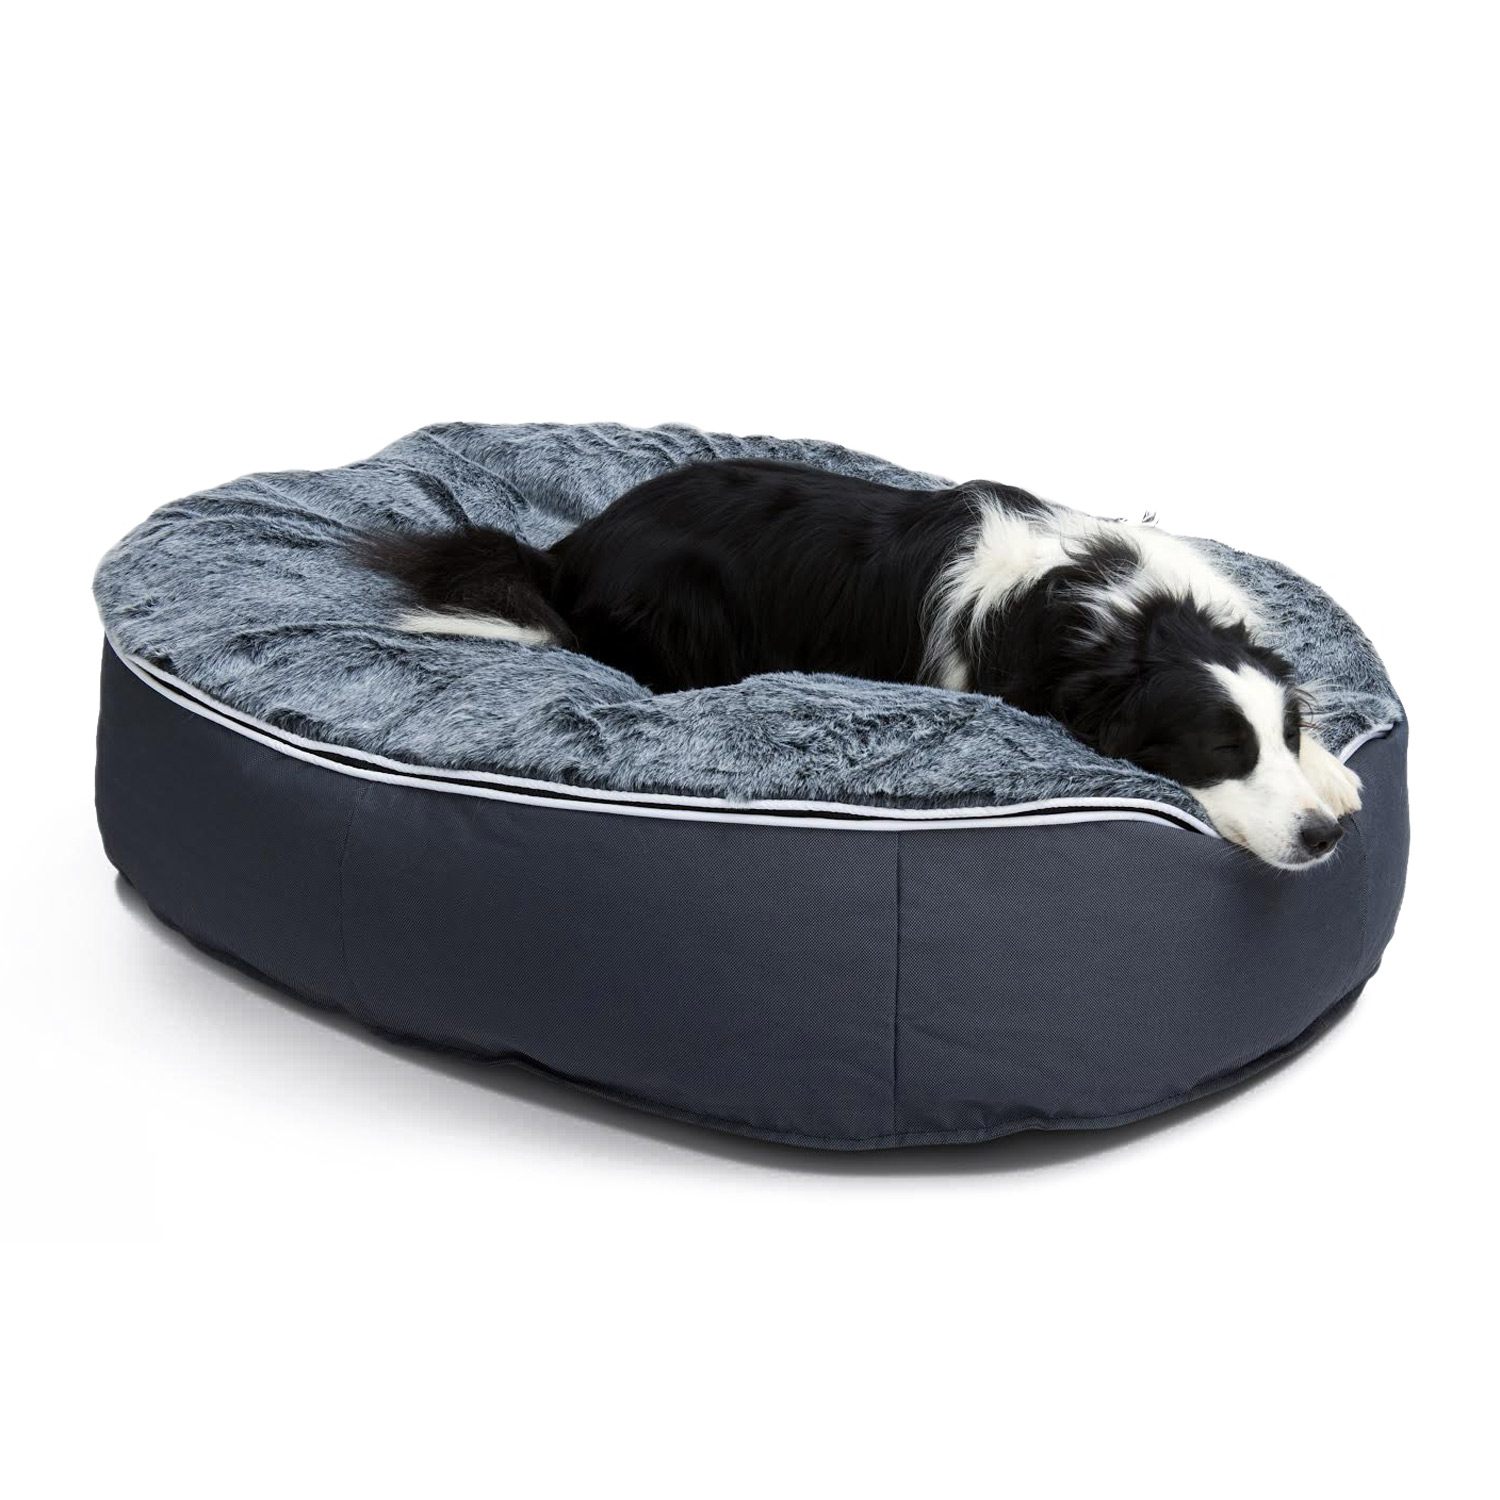 Extra Large Dog Beds Nz